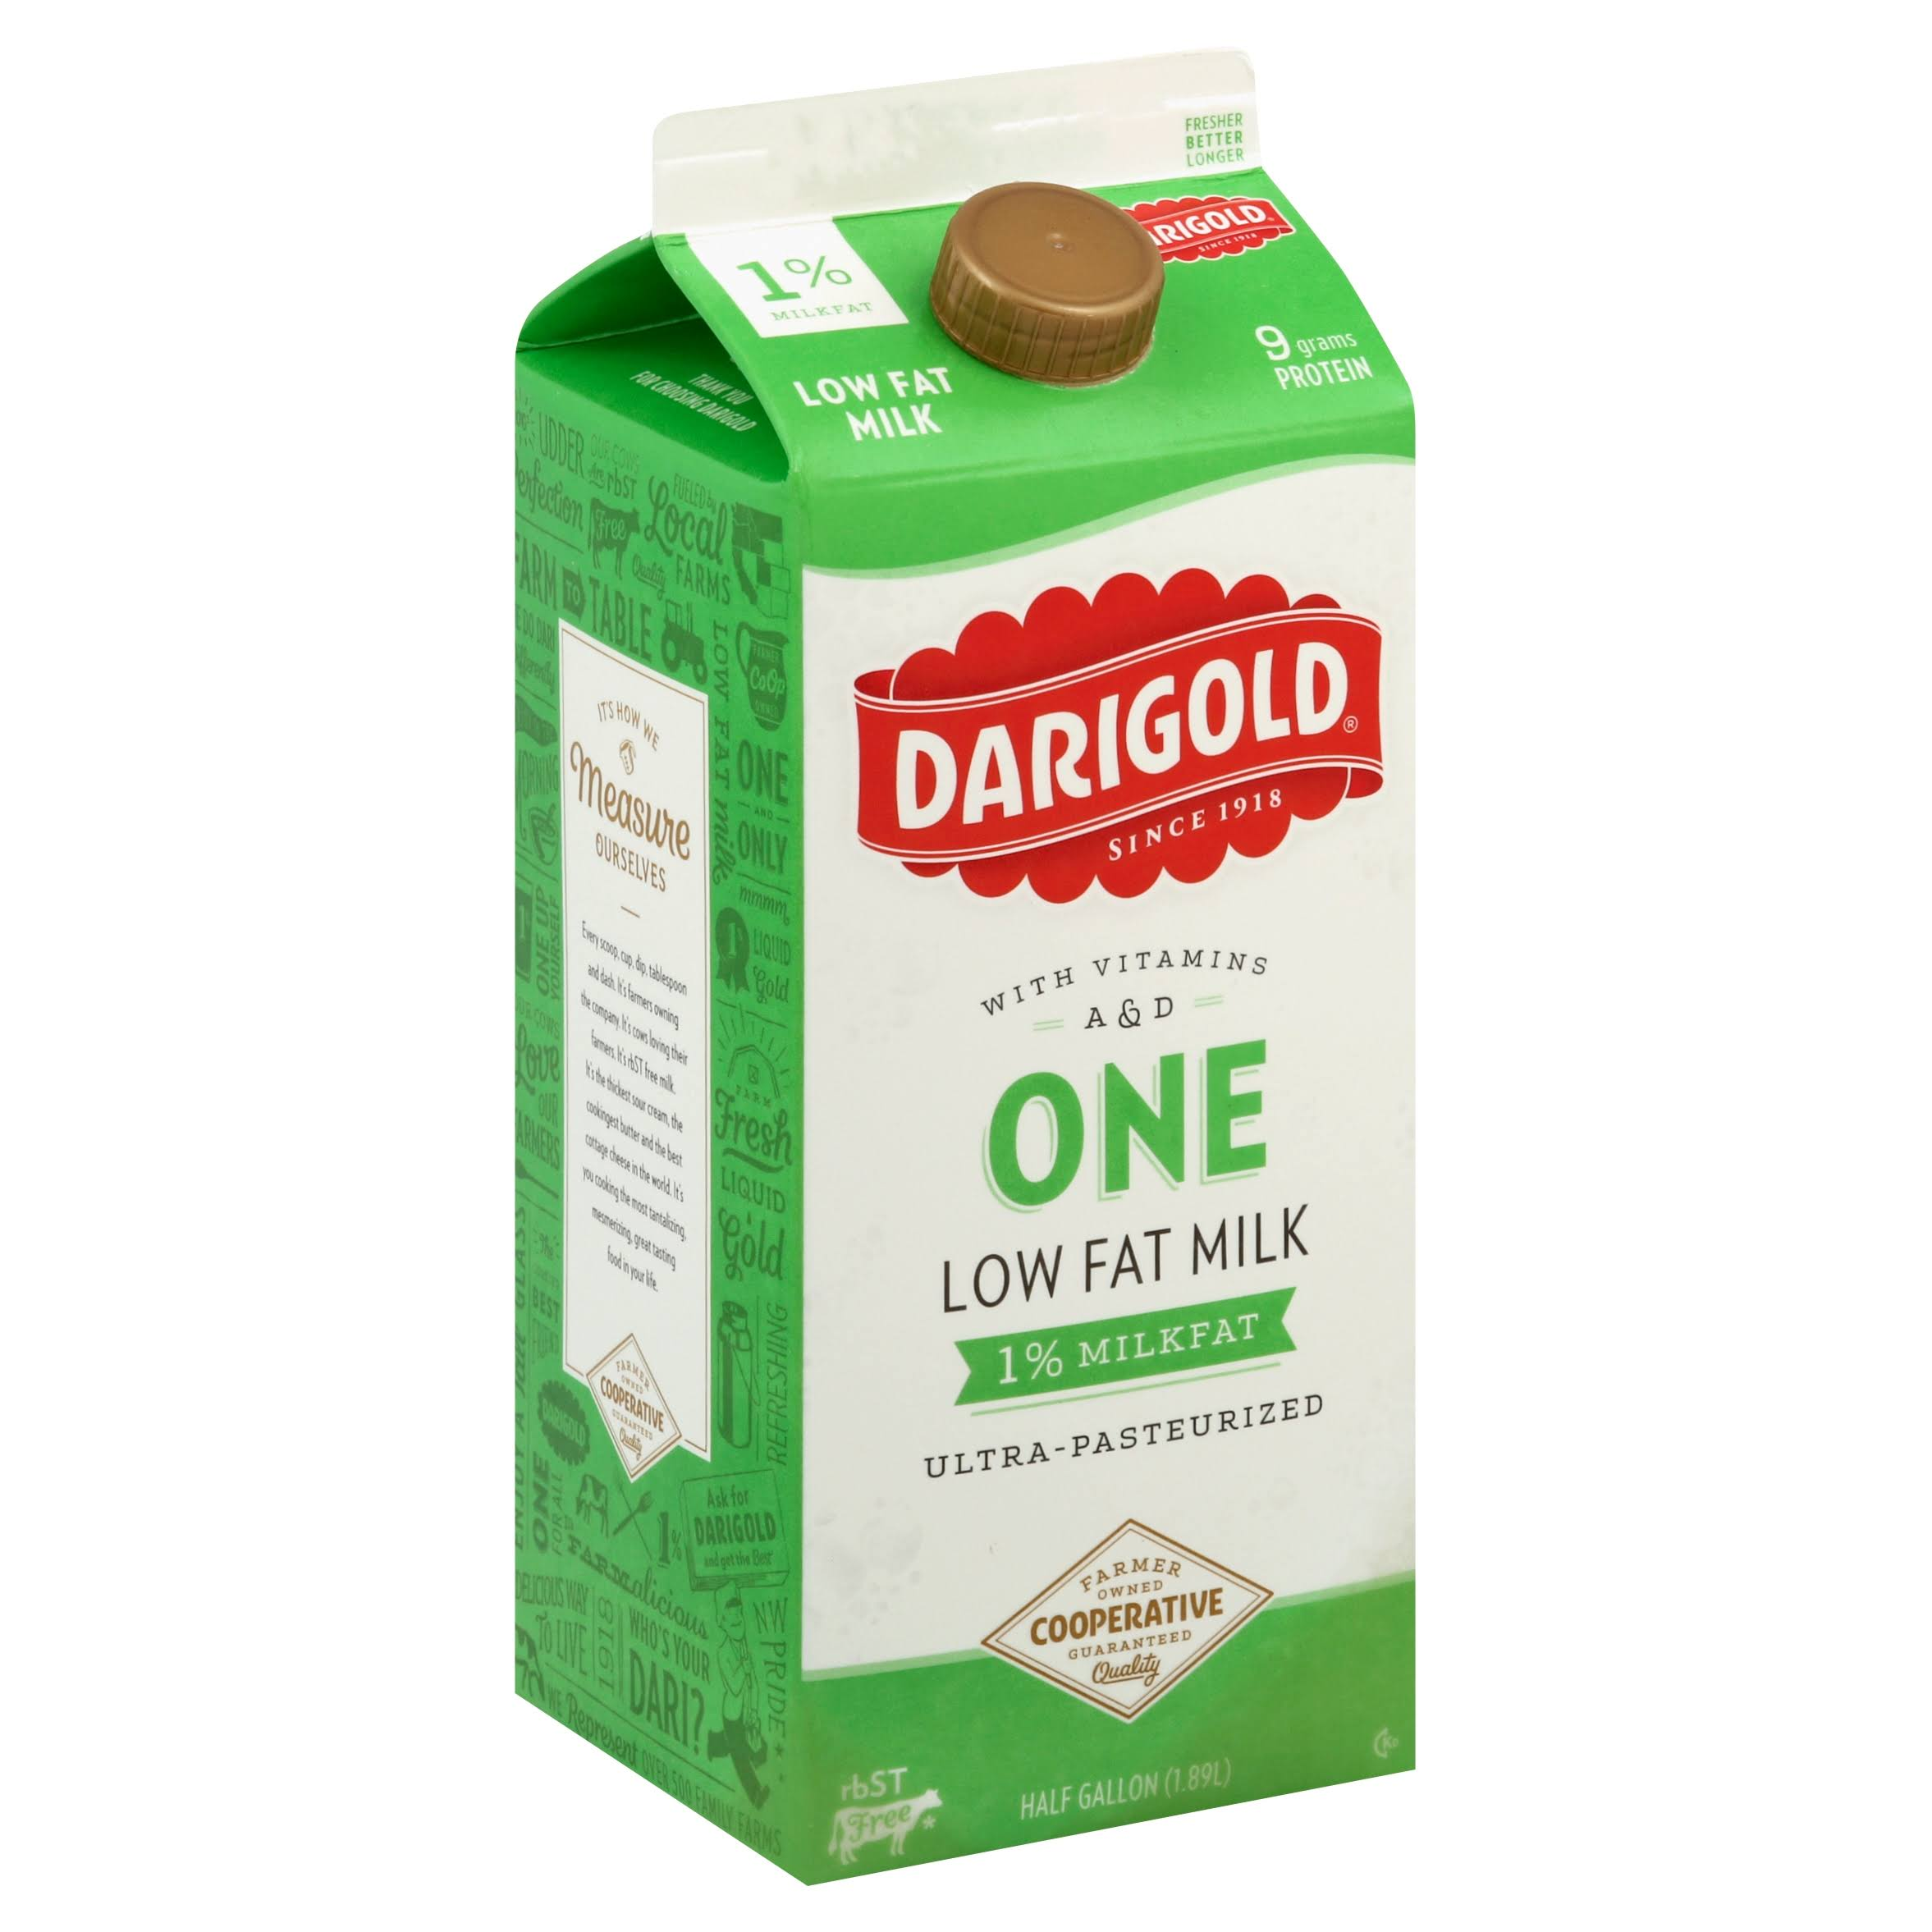 Darigold One Low Fat Milk with Vitamins A & D